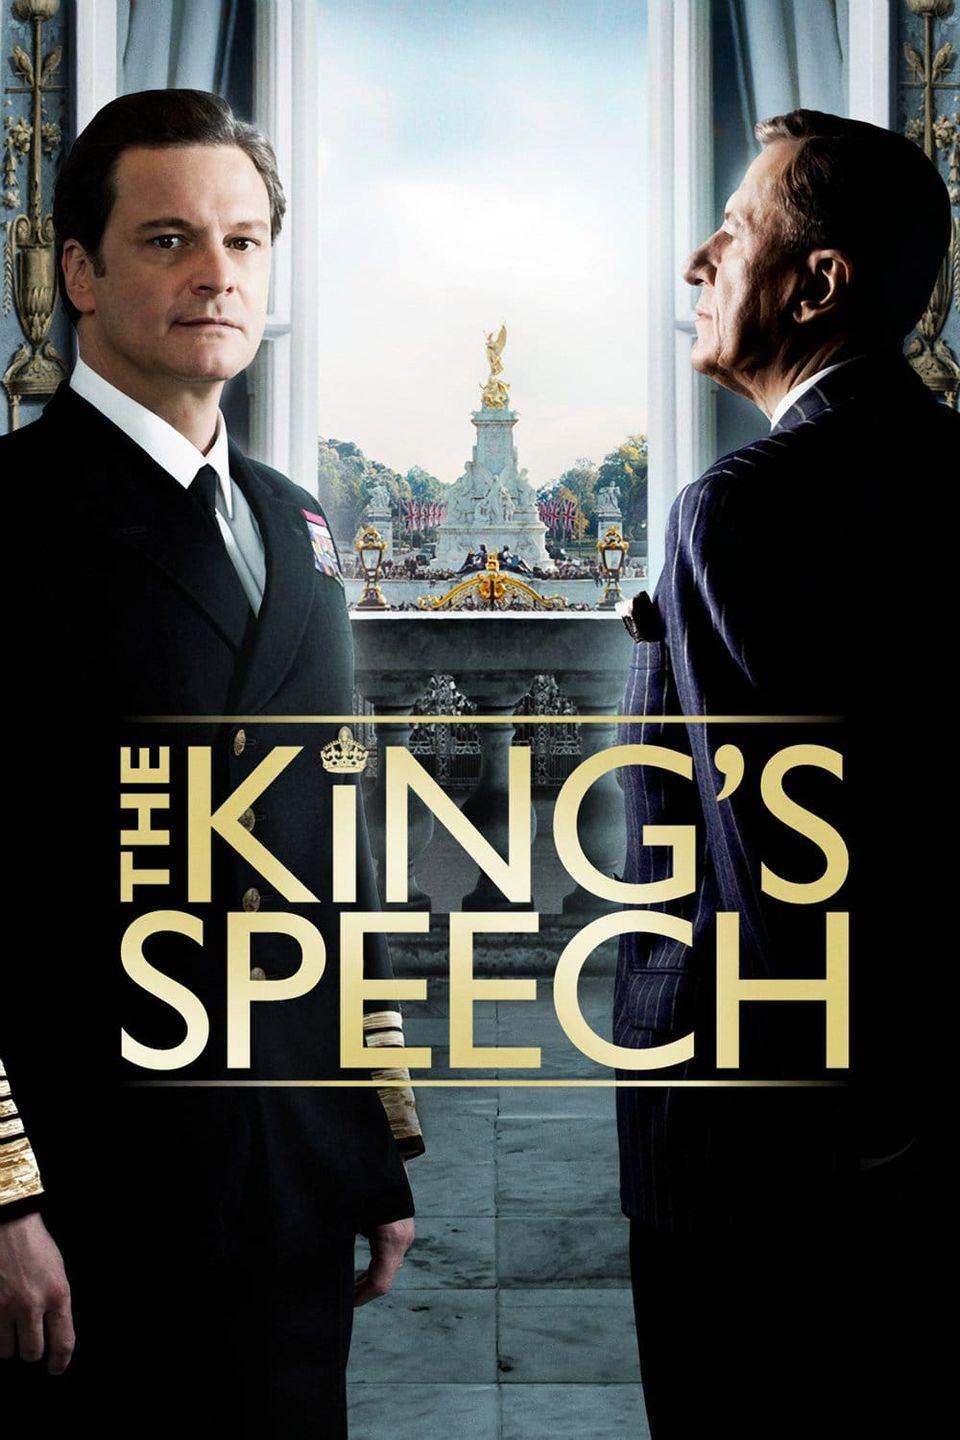 """<p>King George VI, played by Colin Firth, has to overcome a stutter before becoming king. He works with an Australian speech therapist, Lionel Logue, who ends up turning into a friend and mentor during this very important time. It's a lovely—and Academy Award-winning—movie about overcoming personal obstacles.</p><p><a class=""""link rapid-noclick-resp"""" href=""""https://www.amazon.com/Kings-Speech-Colin-Firth/dp/B004R36QUE?tag=syn-yahoo-20&ascsubtag=%5Bartid%7C2140.g.27486022%5Bsrc%7Cyahoo-us"""" rel=""""nofollow noopener"""" target=""""_blank"""" data-ylk=""""slk:Watch Here"""">Watch Here</a></p>"""